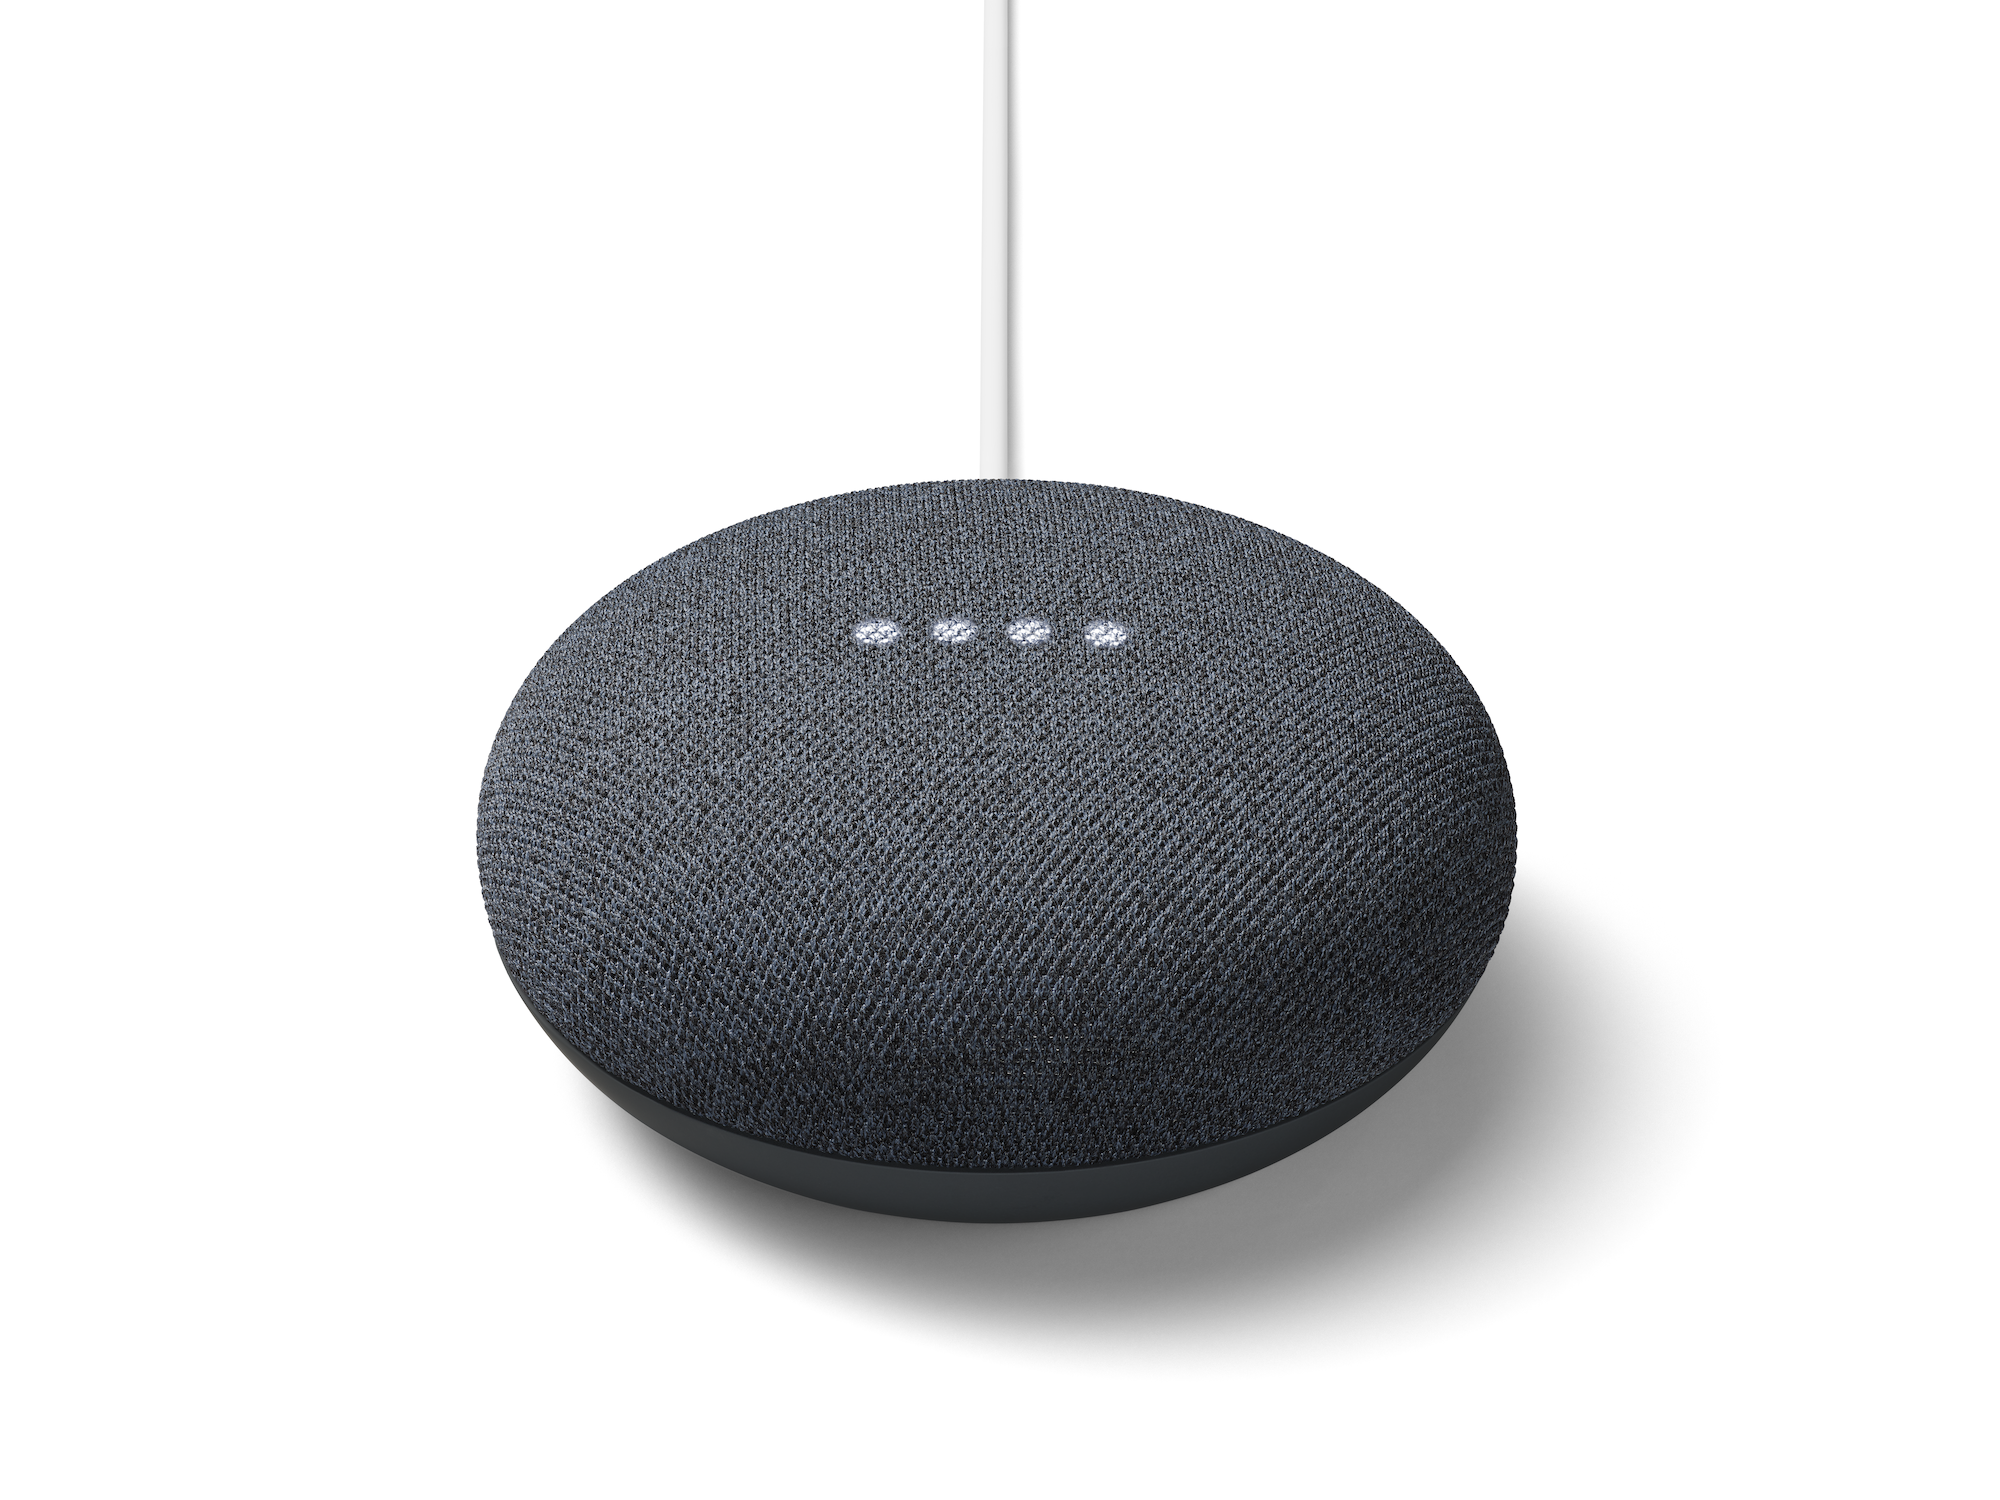 Brand New X1 Google Home Mini Smart Assistant Charcoal